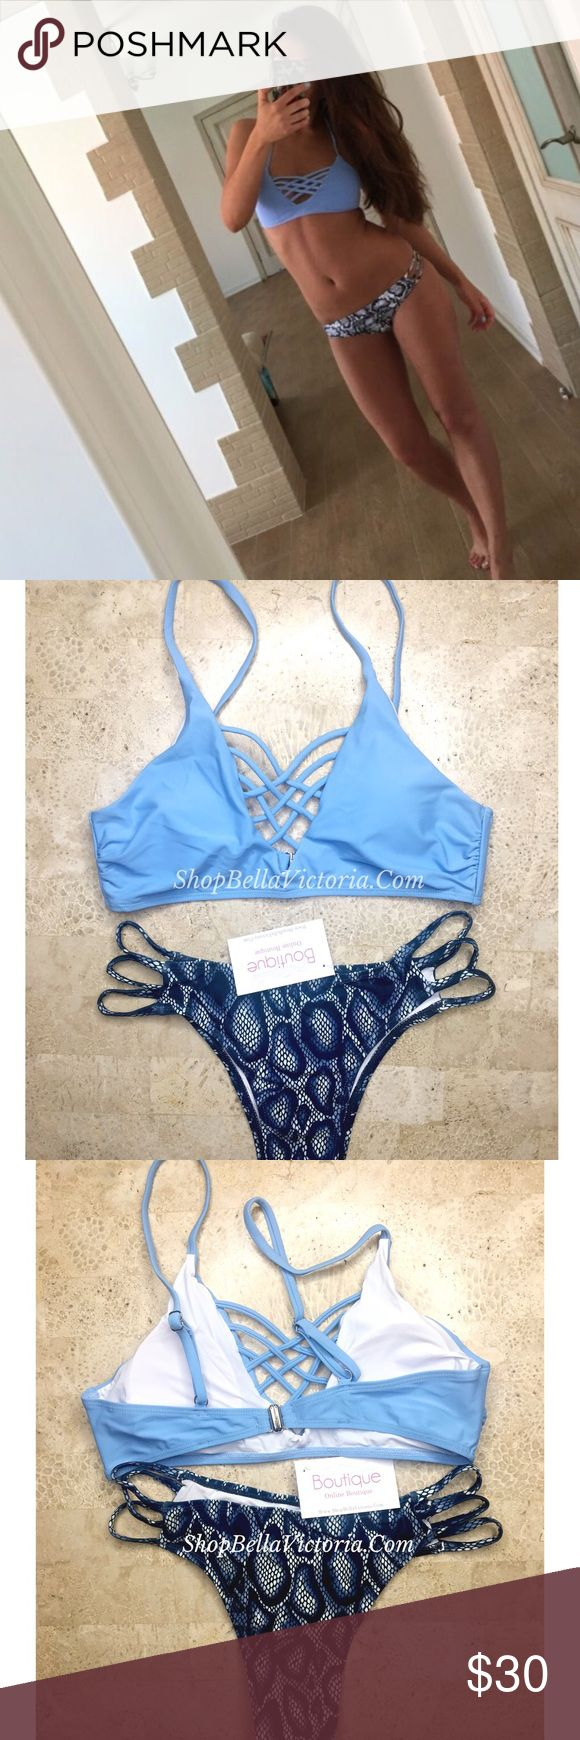 Dianey- Blue Animal Print Strappy Bikini Set New ! Dianey- Blue Animal Print Strappy Bikini Set Light Blue Top Comes Padded Adjustable Straps Clips From Back Cheeky Strappy Bottom Colors Available: Blue Size Available: Medium Bundle to save Follow & tag: Ig: shopBellaVictoria Fb: Bella Victoria BellaVictoriaBoutique Swim Bikinis